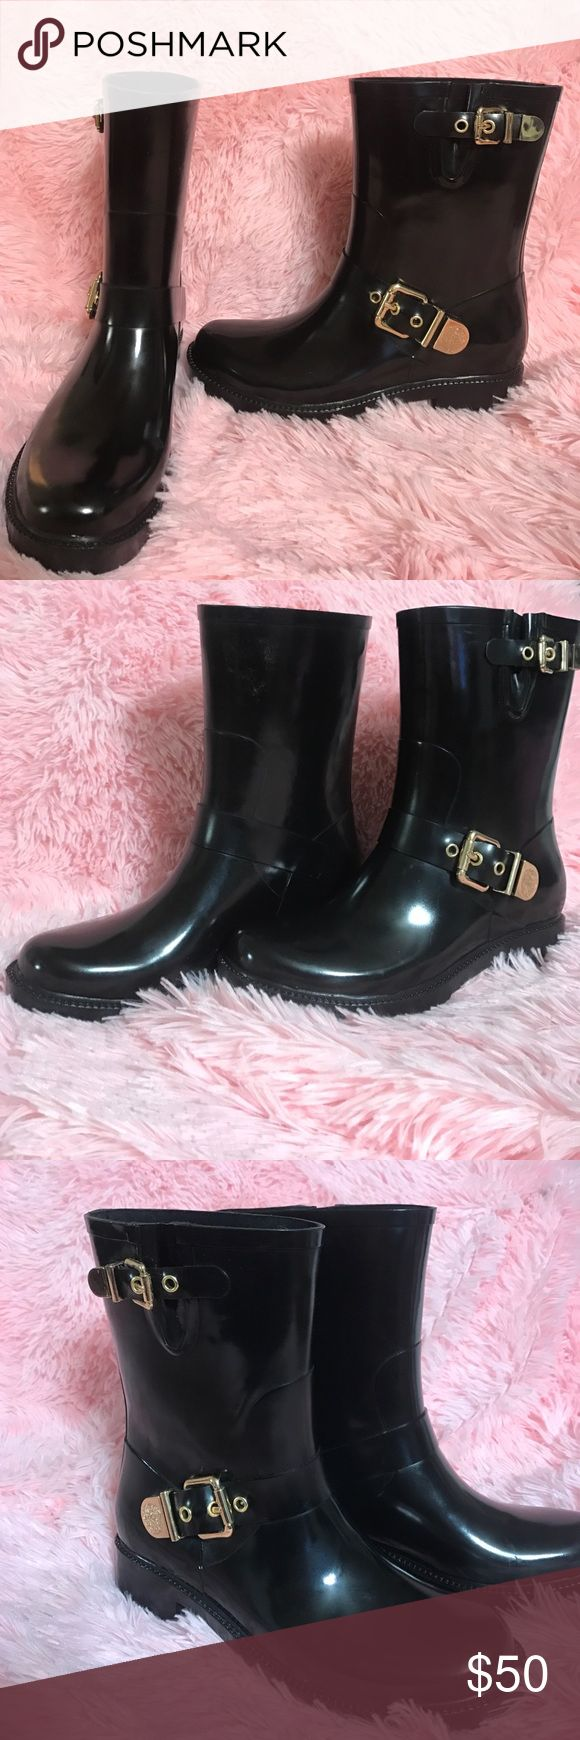 Vince camuto black rain boots Like new excellent to use in snow ❄️ or rain with gold buckles 1.5inches heel Vince Camuto Shoes Winter & Rain Boots